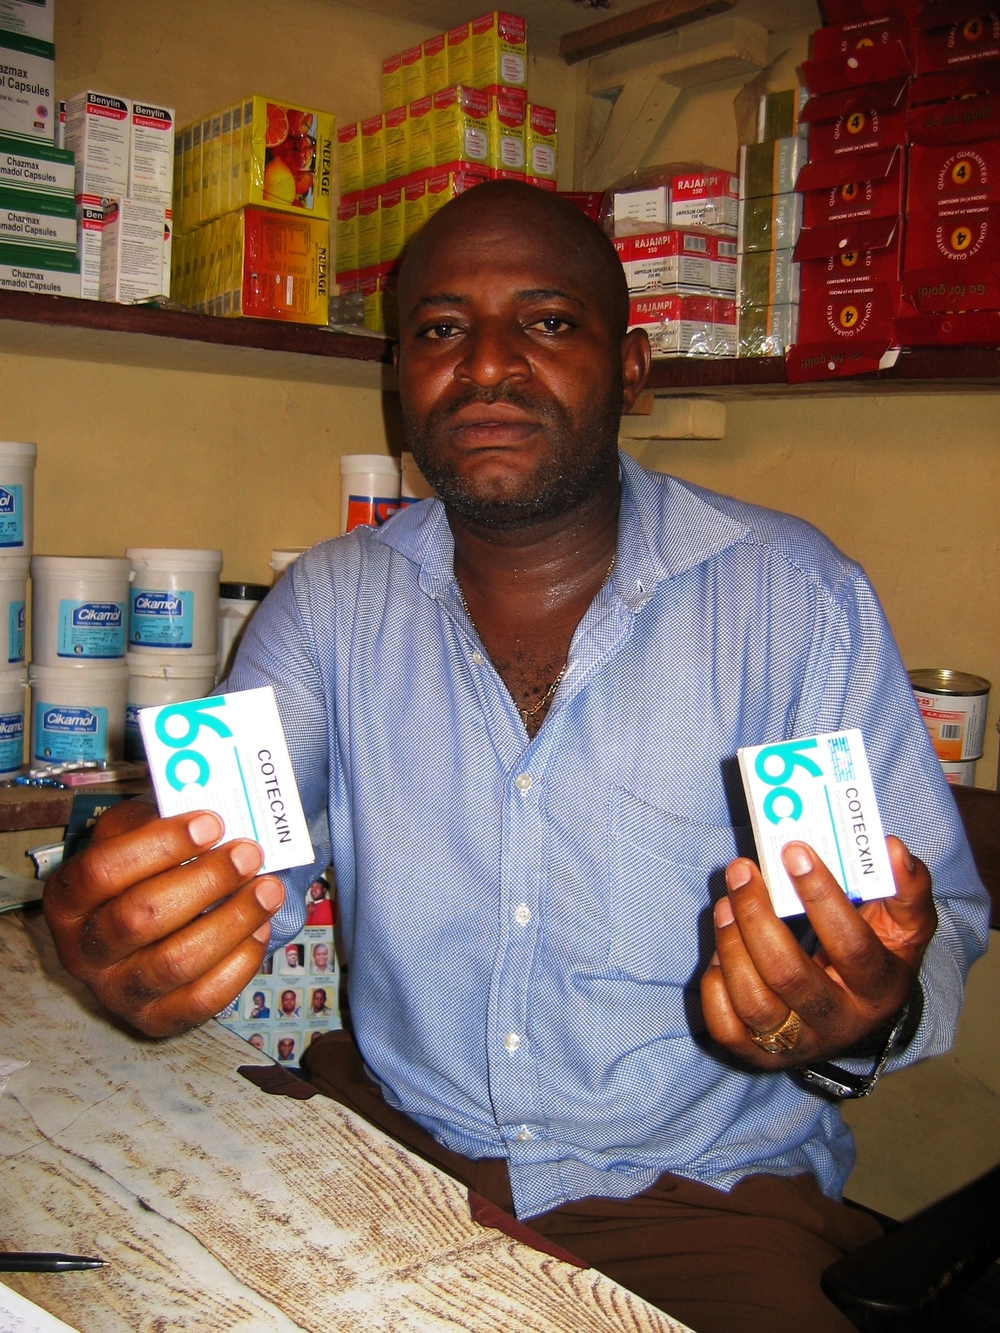 One of these packets of the anti-malaria medicine Cortecxin is fake, says Simon Okpoko, chairman of task force to stop fake drug at Ogbutu market, Enugu, Eastern Nigeria.